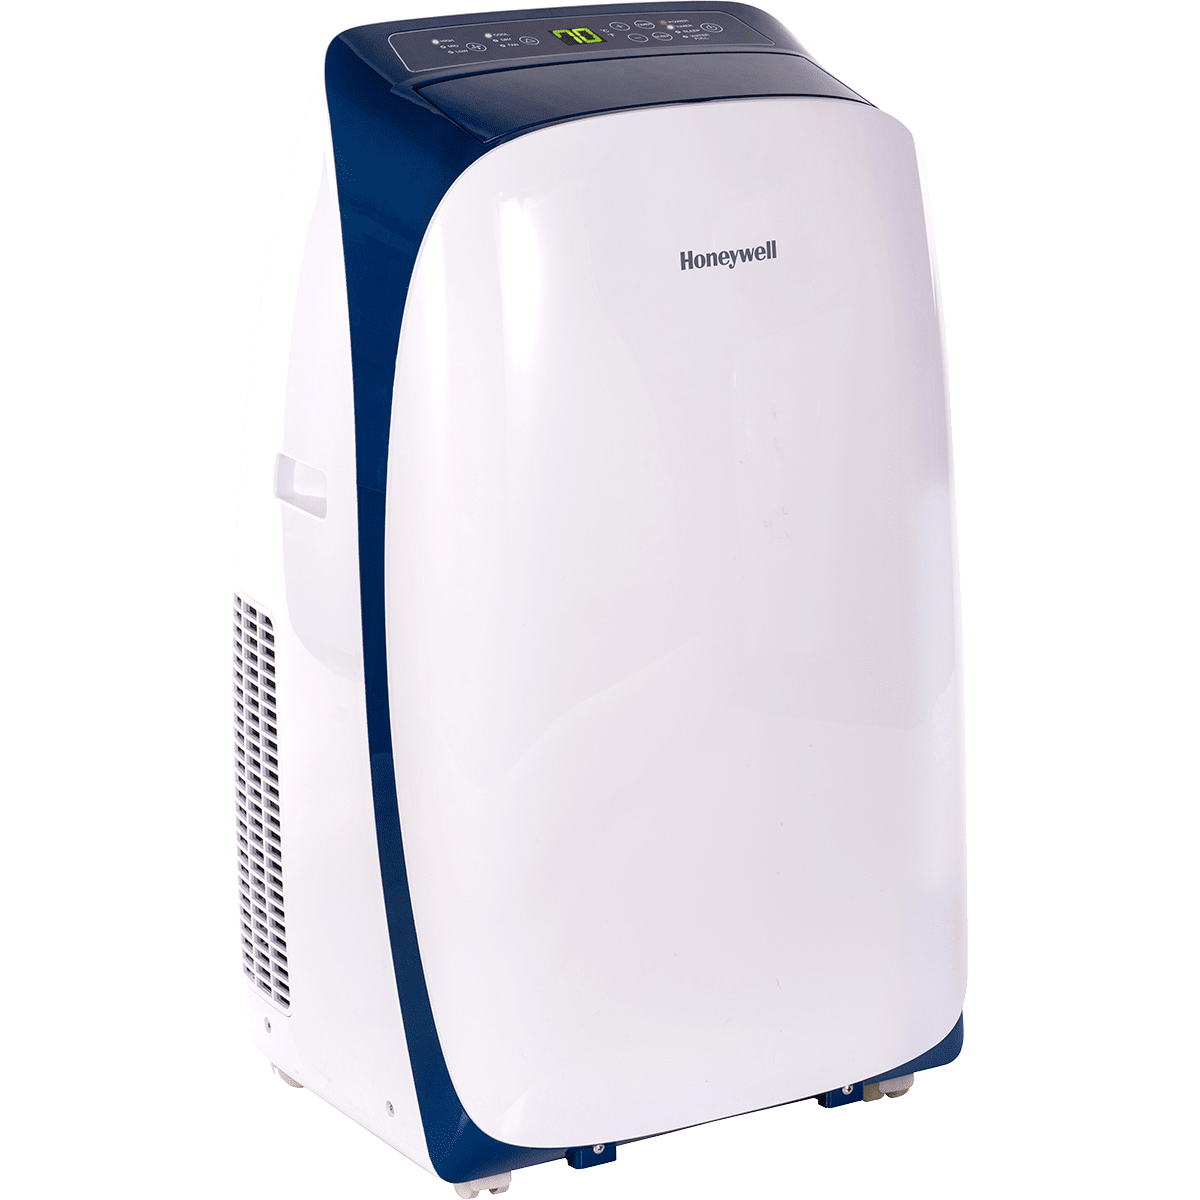 Honeywell HL Series 14,000 BTU Portable Air Conditioners ho5474